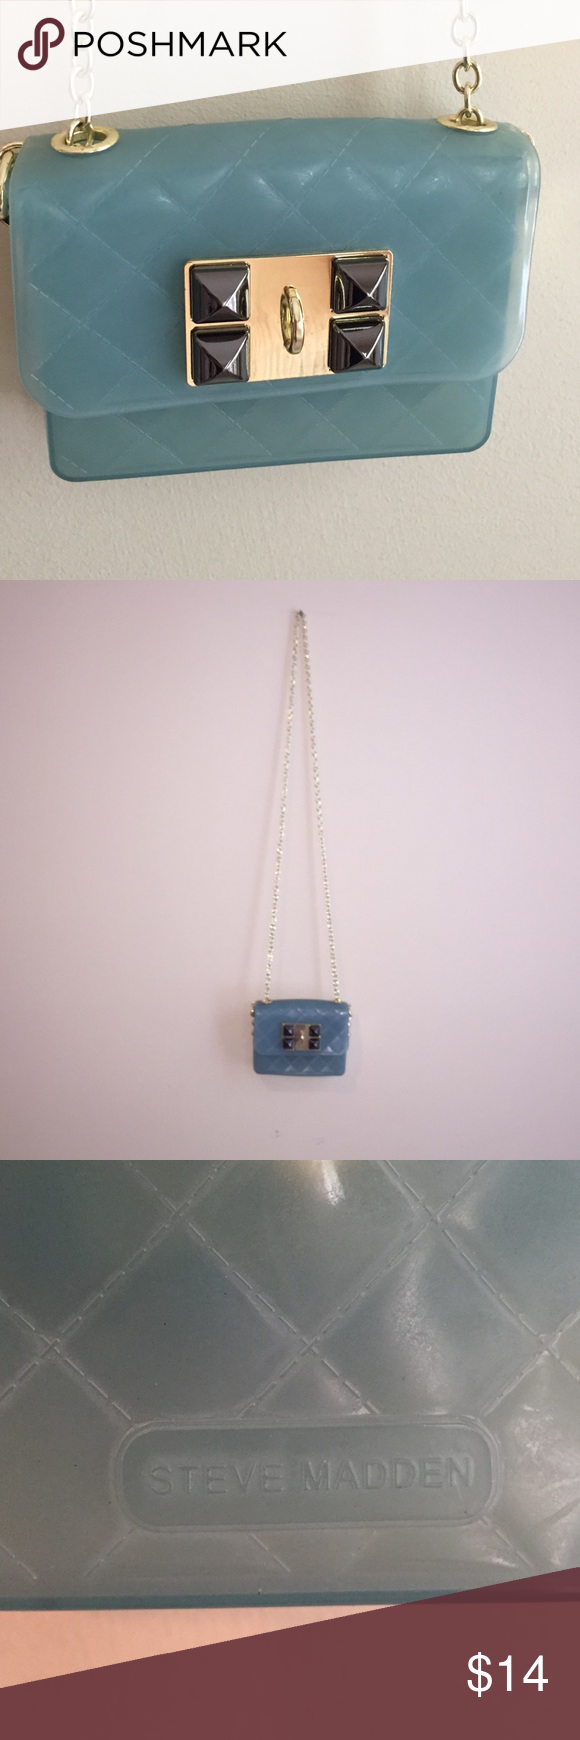 Steve Madden Mini Purse Steve Madden Mini Purse in opaque light greenish blue. Magnetic closing with fun embellishments. In great condition. Steve Madden Bags Mini Bags